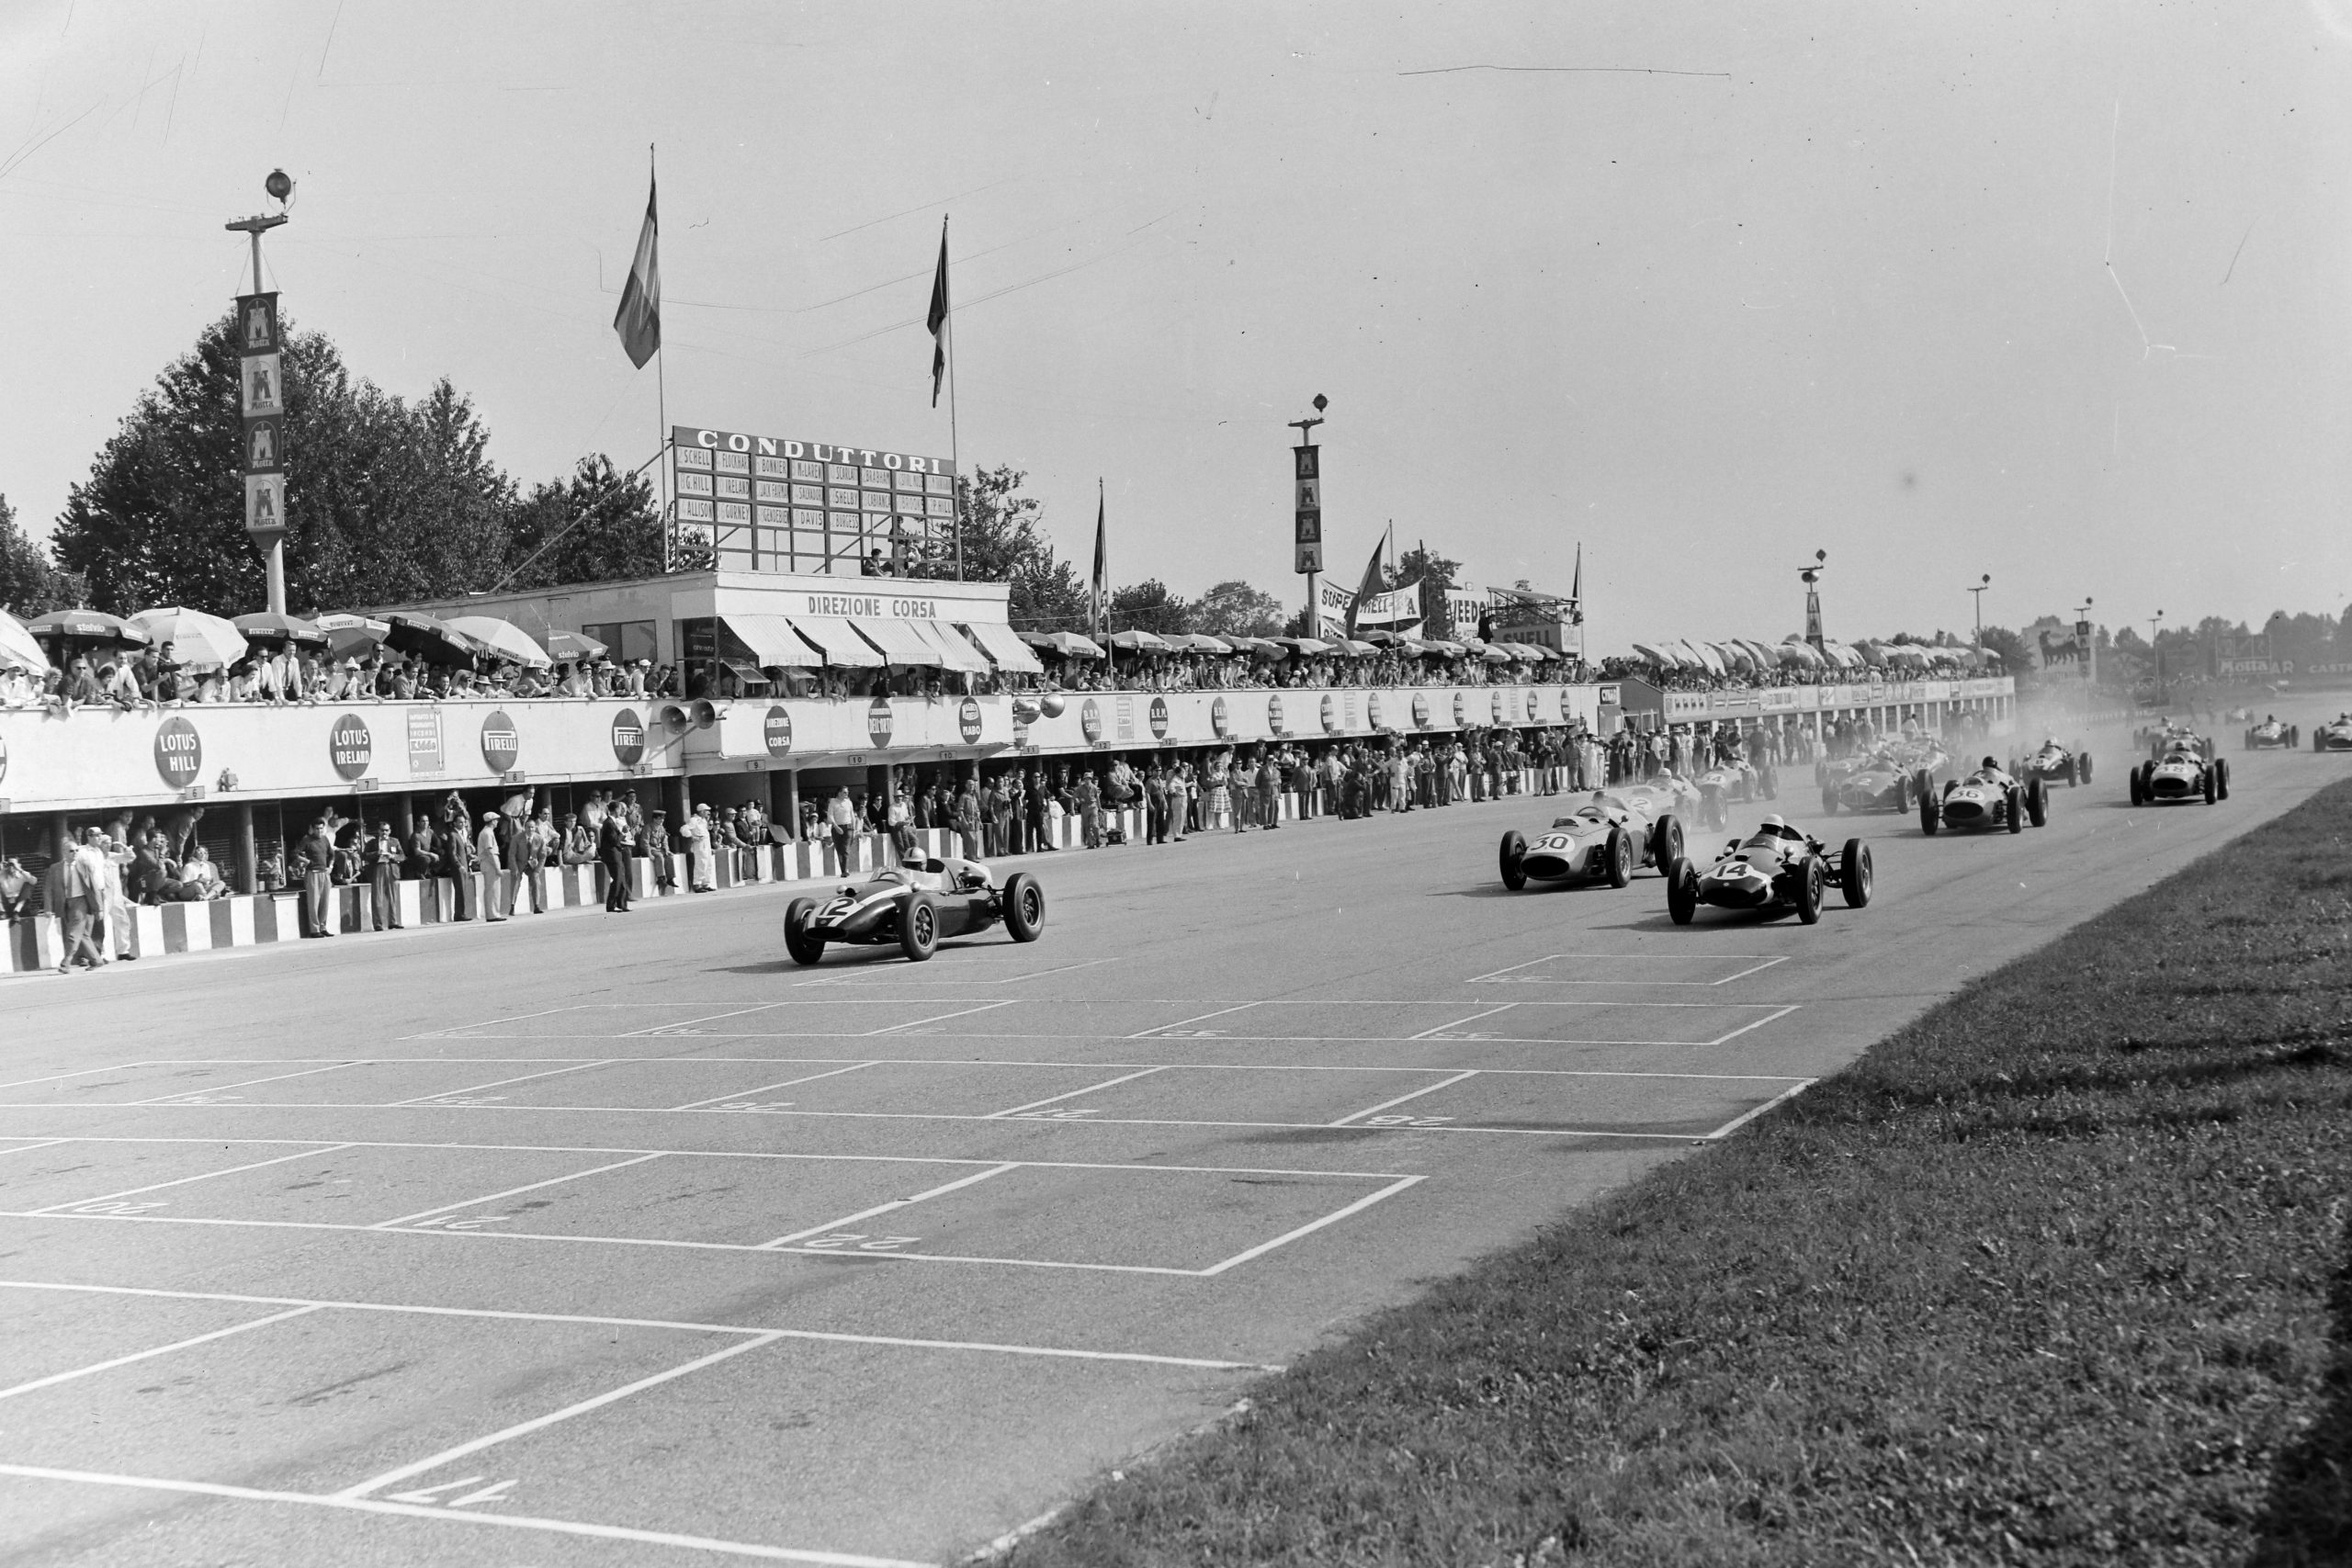 Jack Brabham (Cooper T51 Climax) leads Stirling Moss (Cooper T51 Climax) and Tony Brooks (Ferrari 246) at the start of the Italian GP at Autodromo Nazionale Monza.